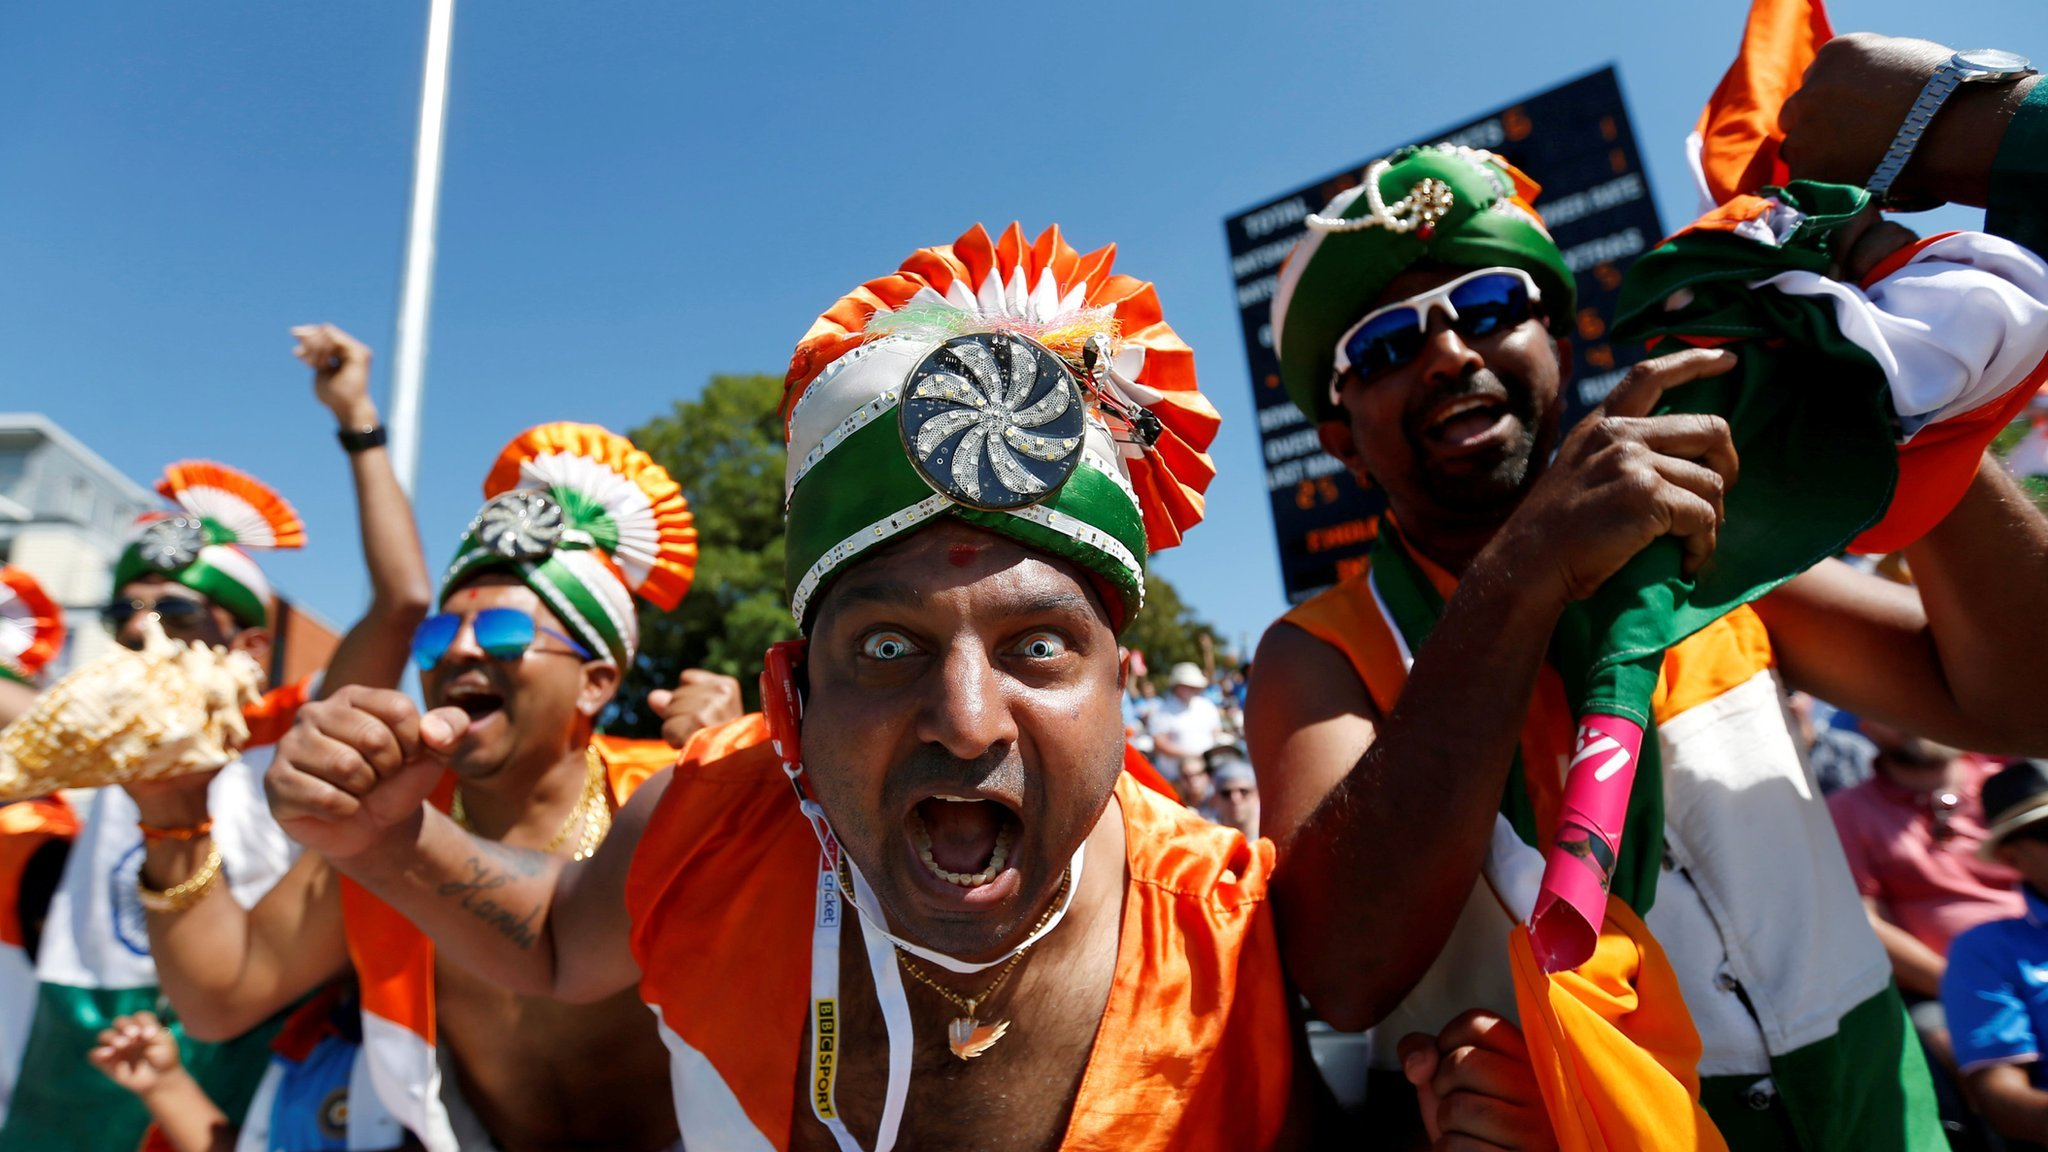 Bharat Army: The British Asians behind India cricket team's biggest supporter